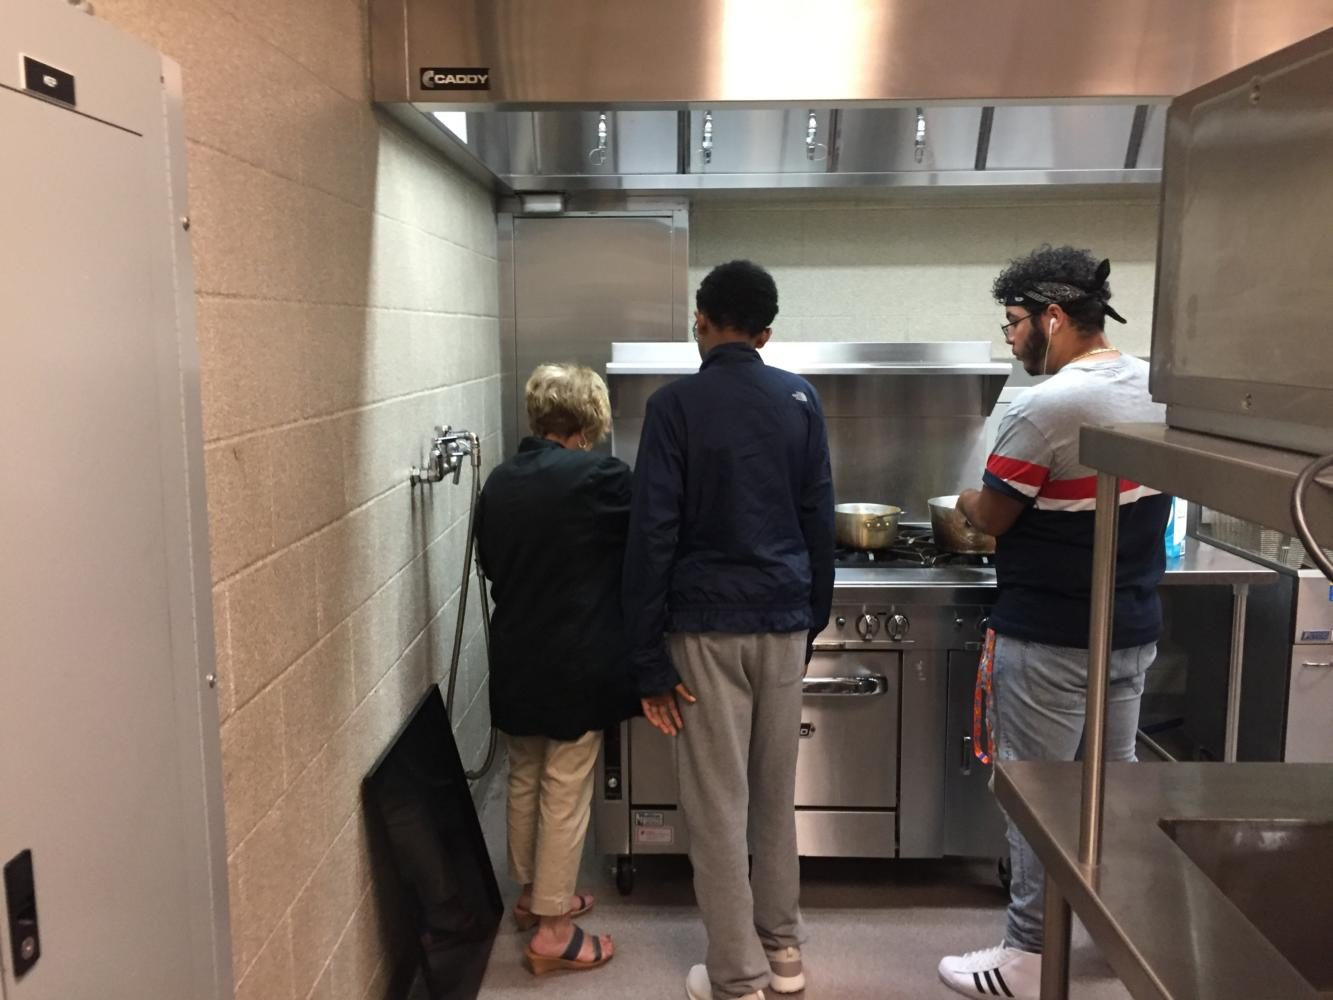 The NHS Culinary Program thrives after more than forty years